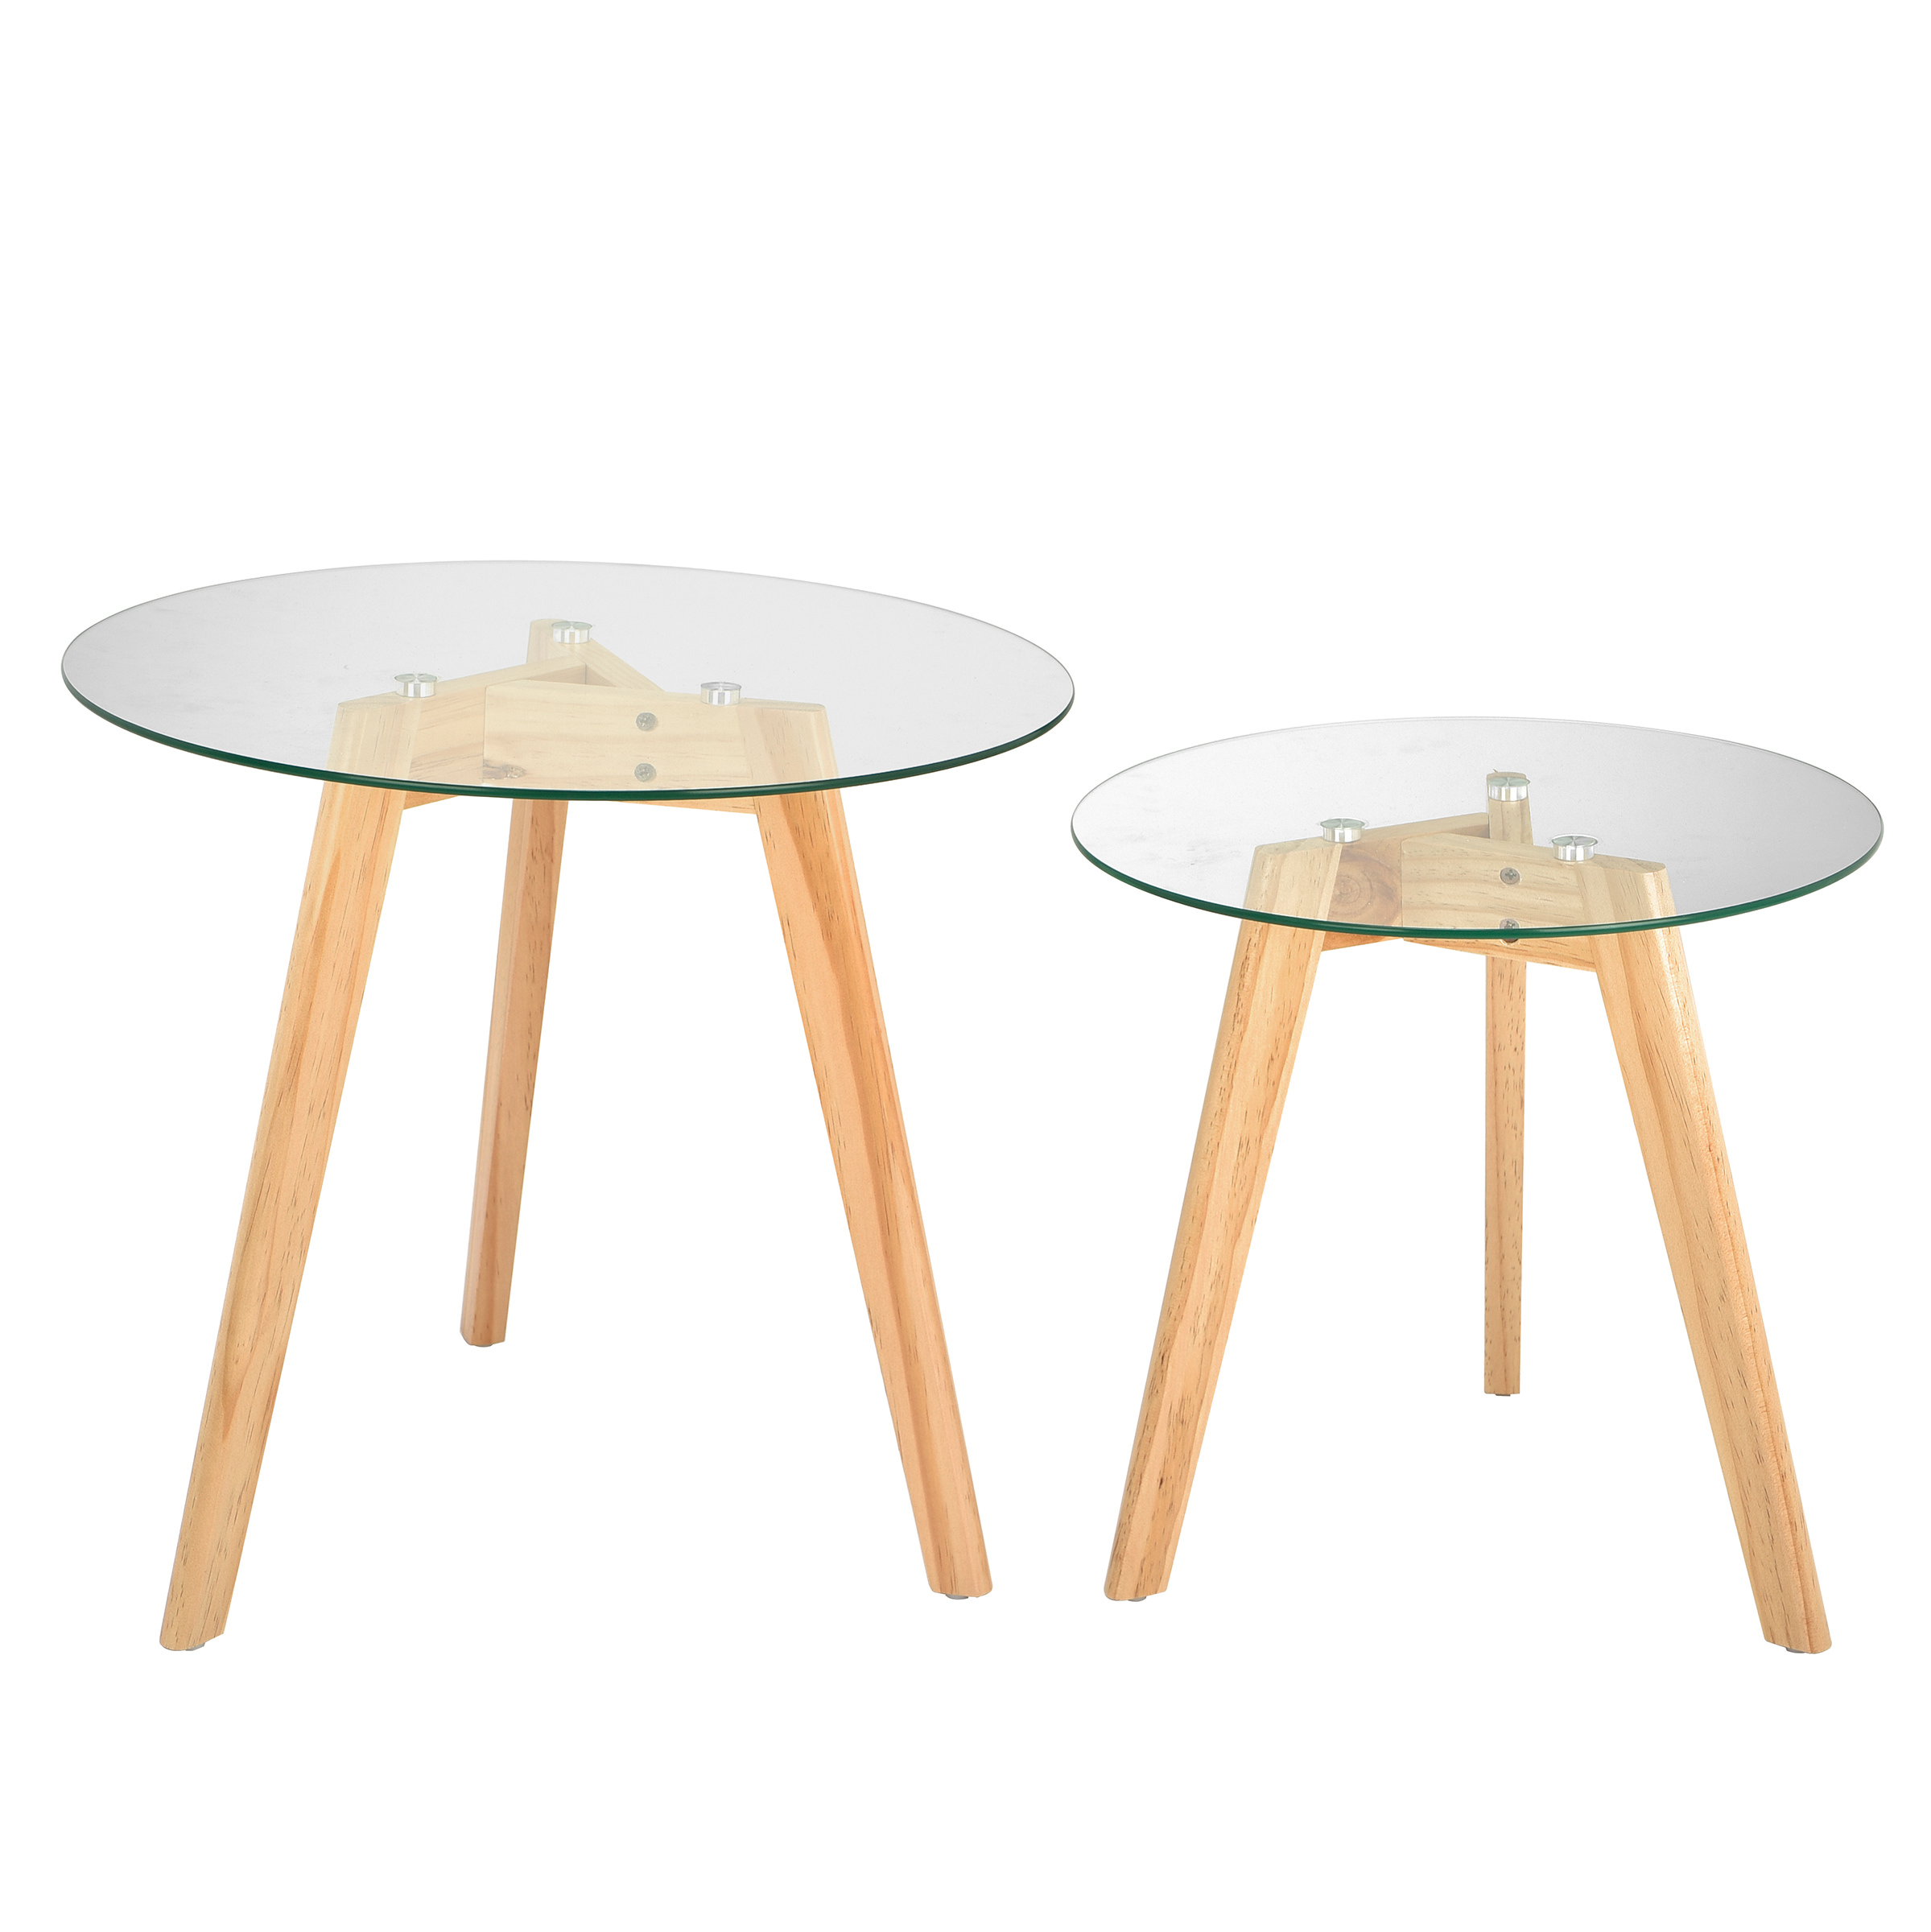 "ADIRHOME ""TOTALLY NATURAL"" GLASS TOP TABLES IN TWO SIZES FIT ANYWHERE"